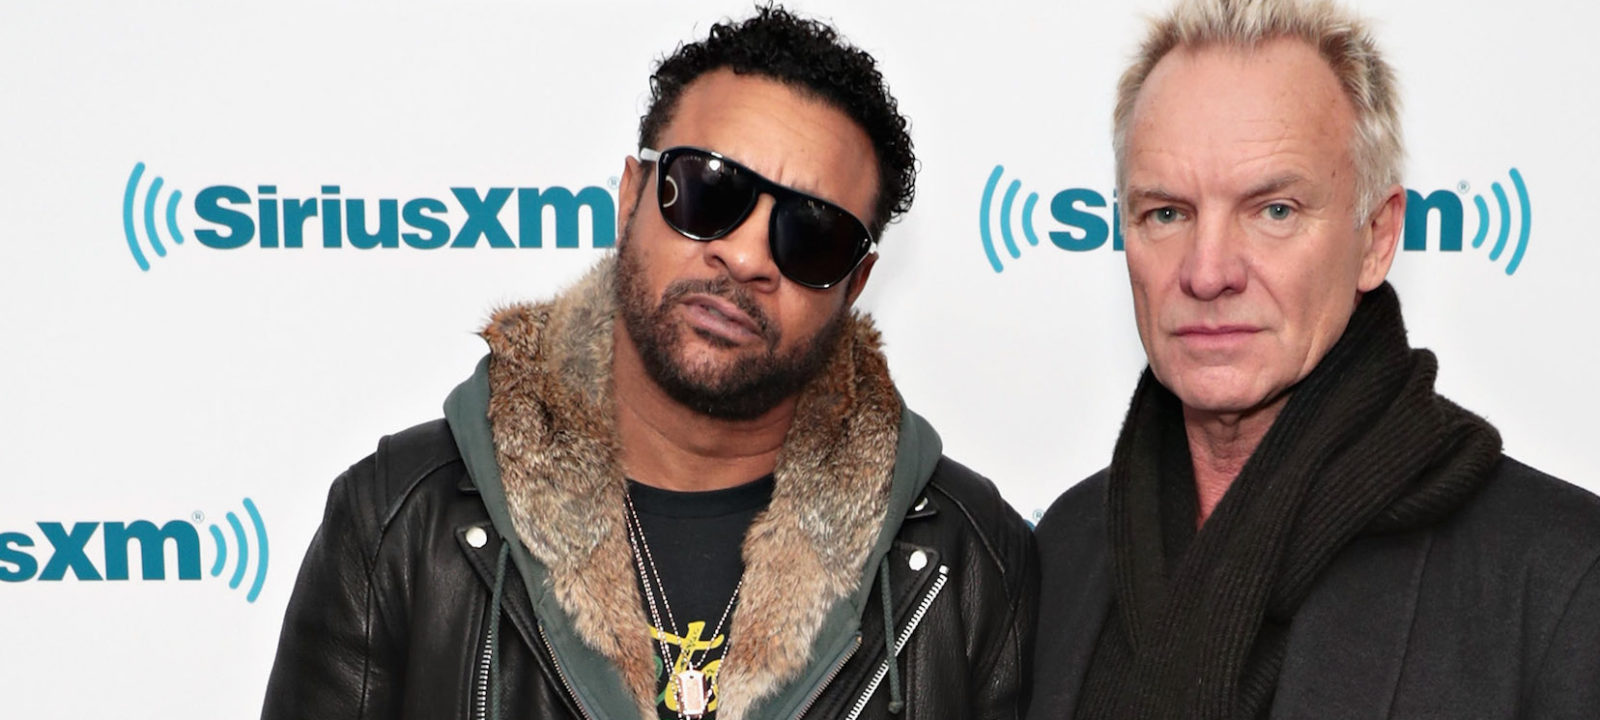 Sting And Shaggy On SiriusXM's The Joint Channel